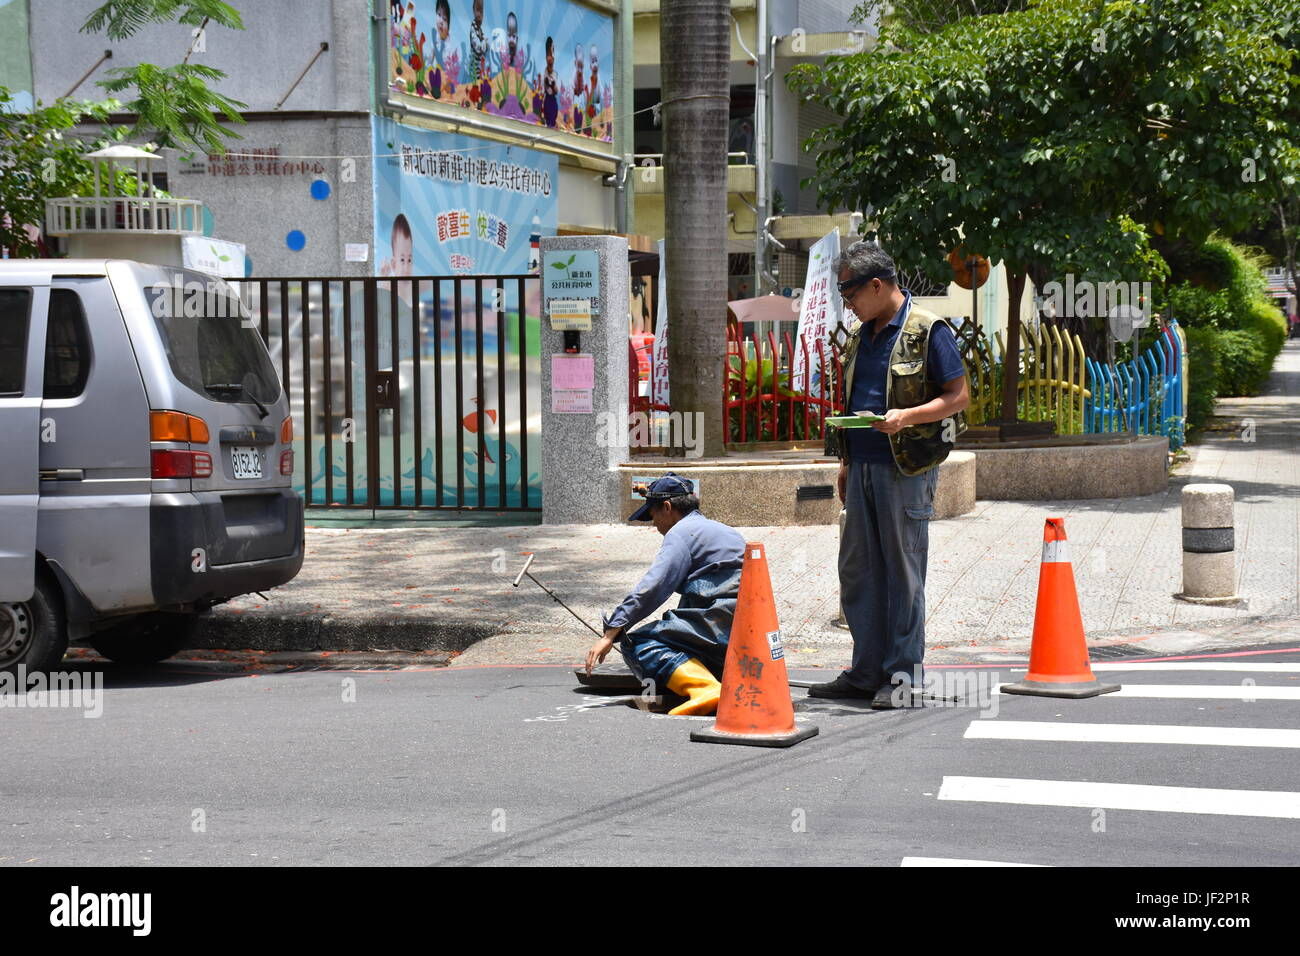 A construction crew man exits a man hole from the sewers below after an inspection of the wiring underground, Taiwan. - Stock Image